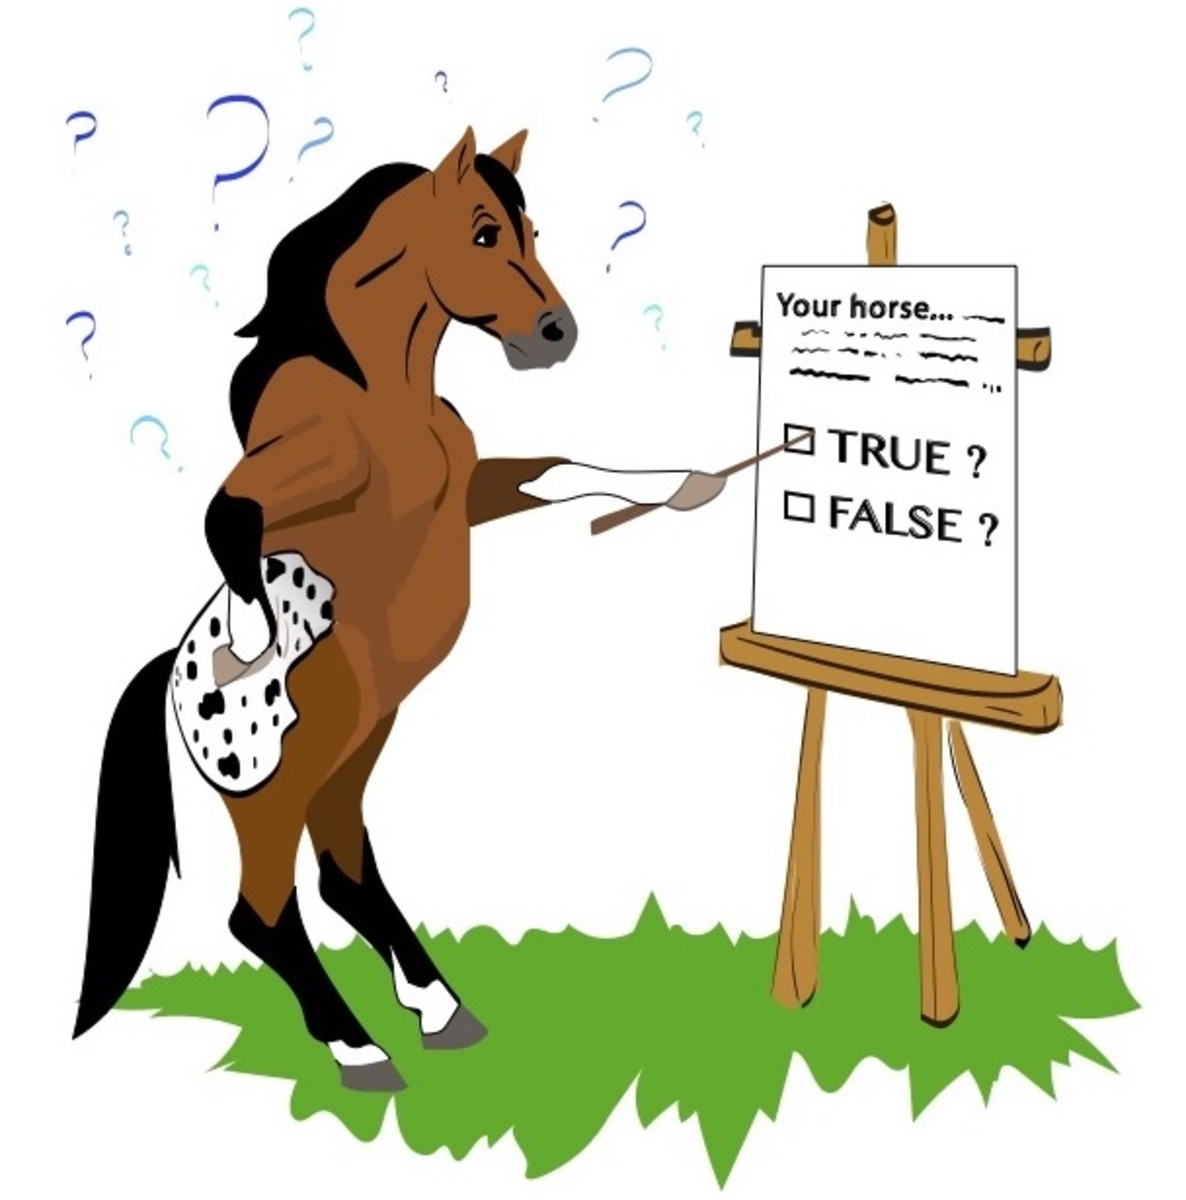 Horse withers. Trivia challenge conformation rider